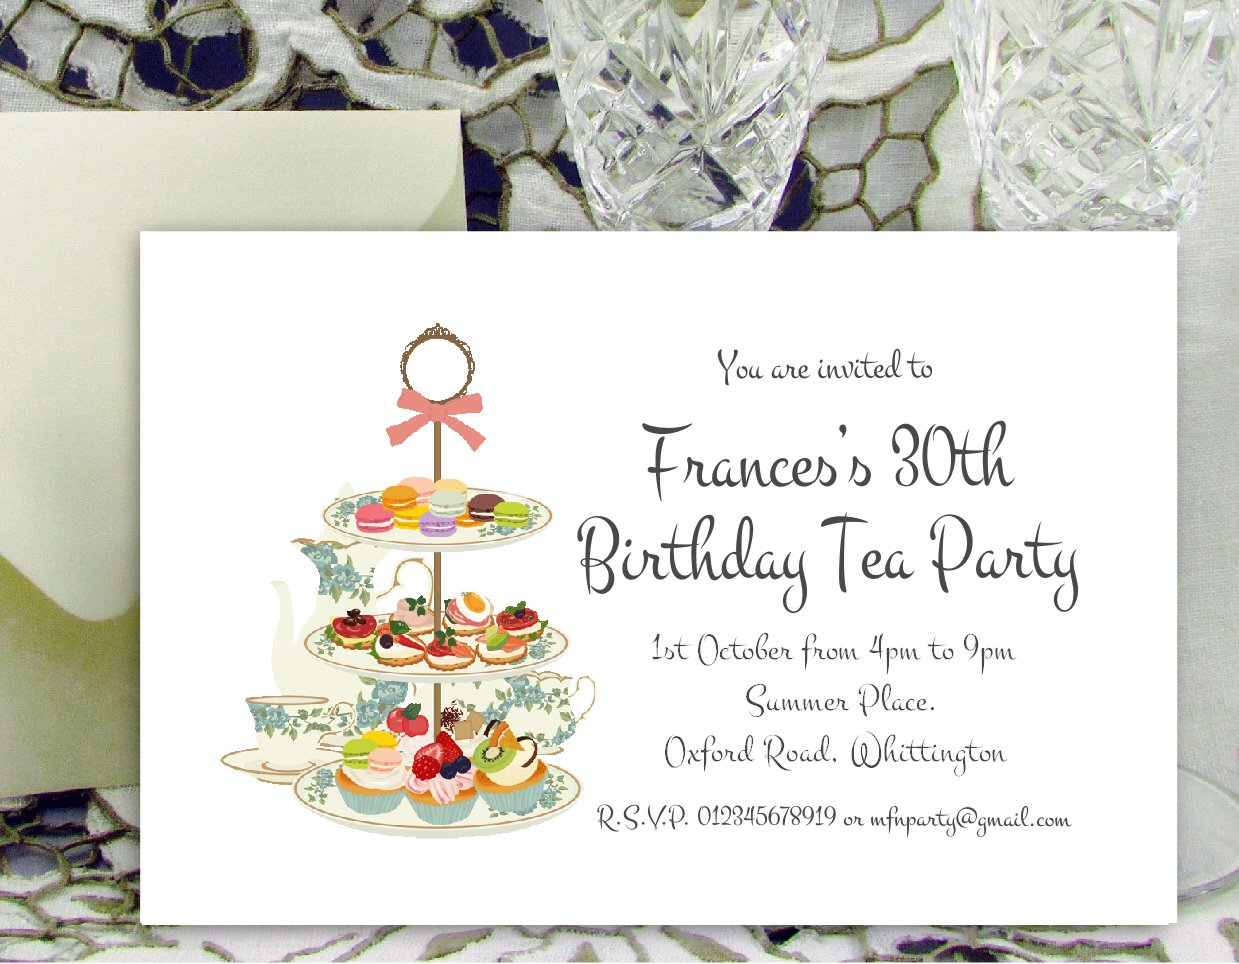 50 PARTY INVITATIONS Personalised for You. Tea Party Birthday ...